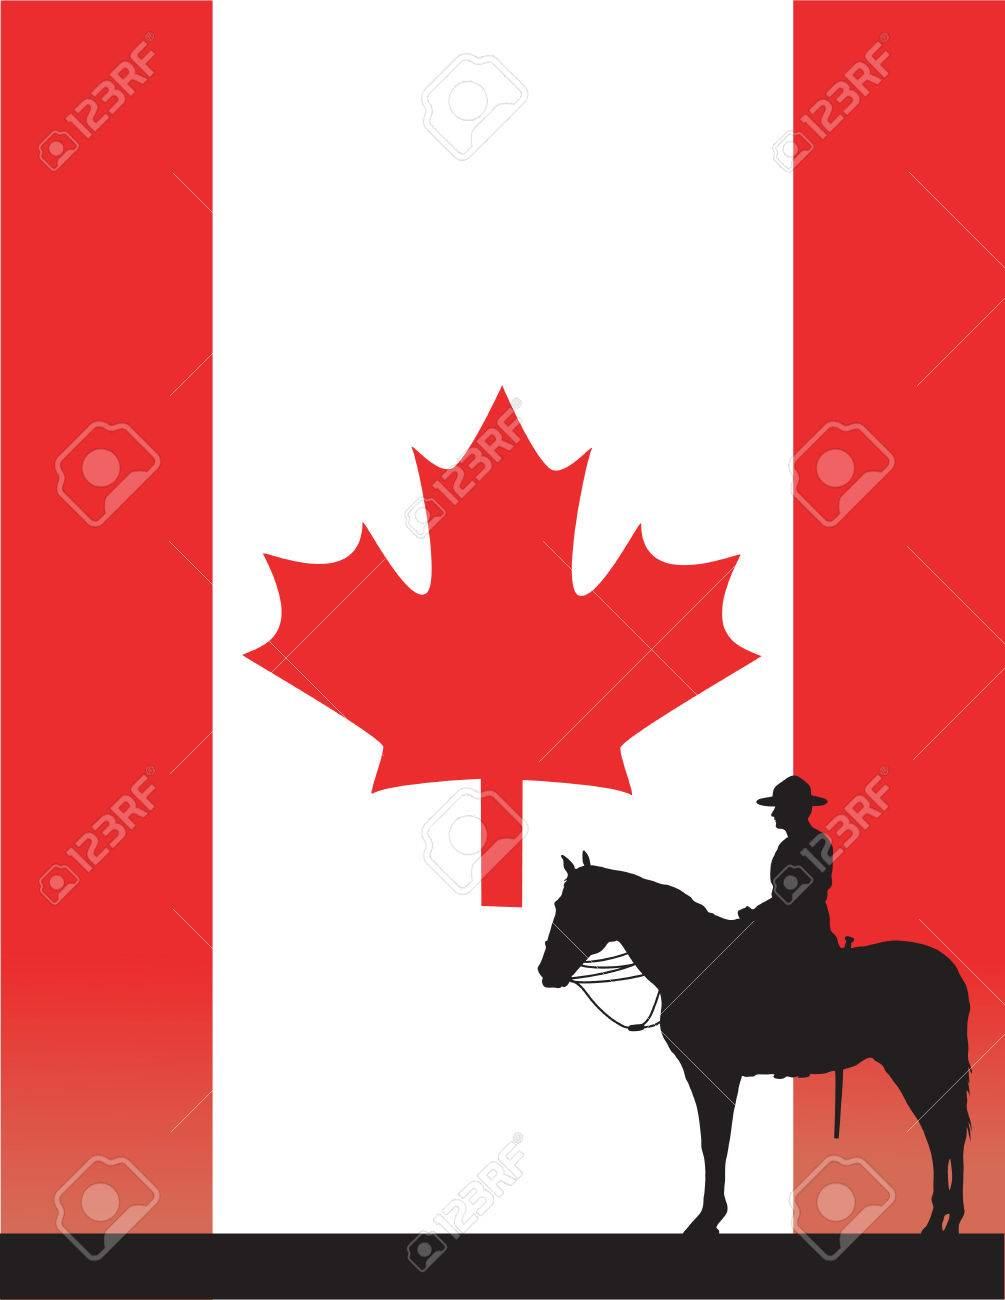 the silhouette of a canadian mounted police officer against a